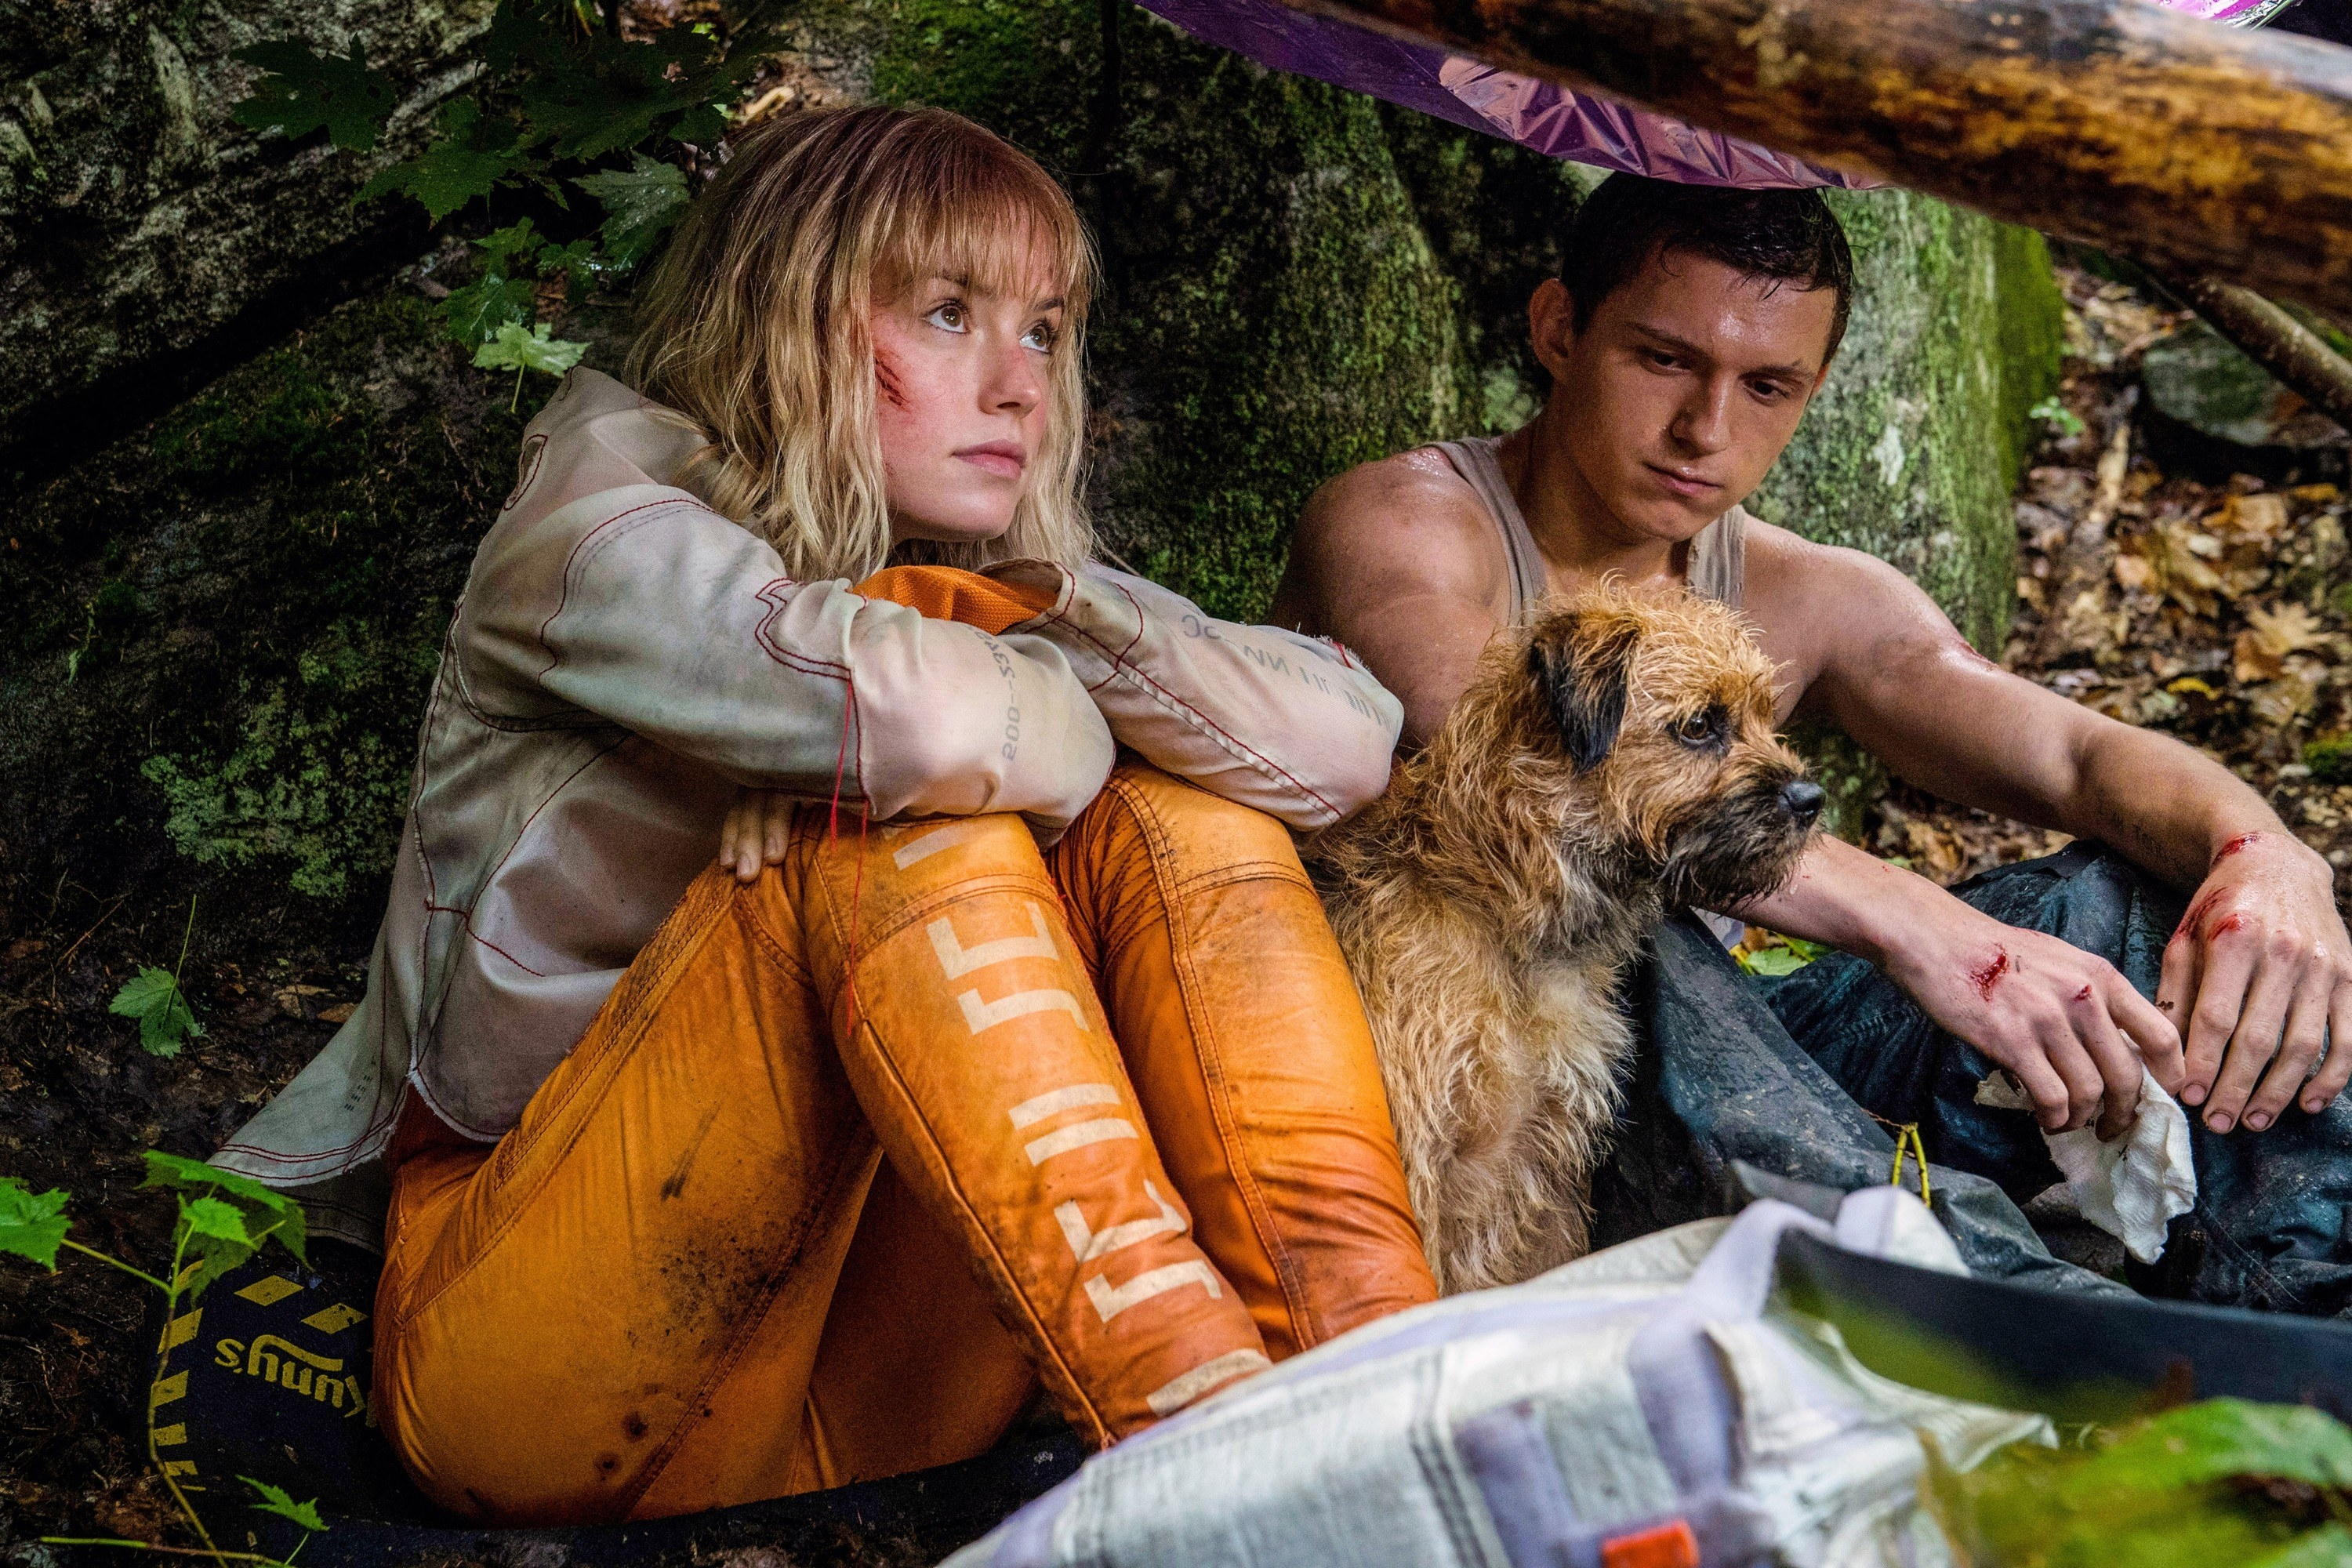 Daisy Ridley and Tom Holland playing Todd and Viola in the movie Chaos Walking. they are both sitting down with their dog manchee in between them in the woods.